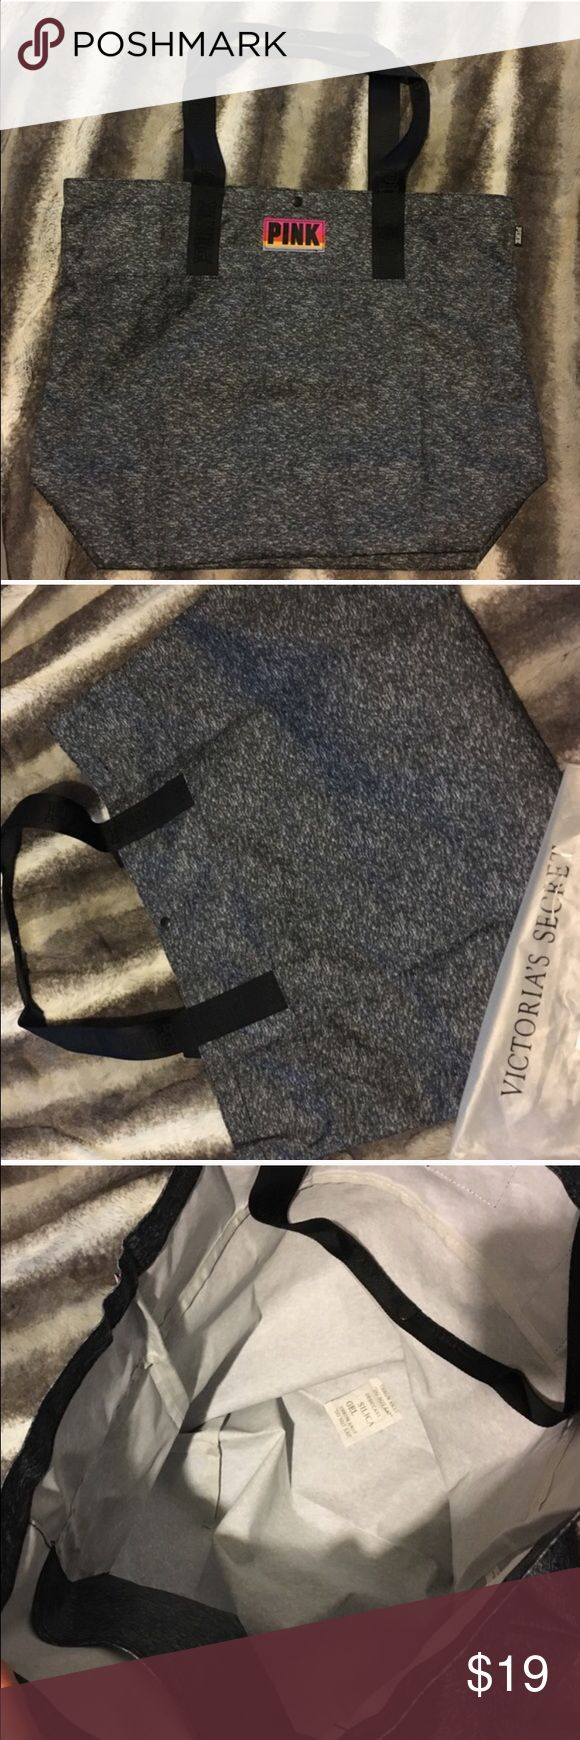 [Pink Victoria's Secret] Tote Bag NWOT bought it online. Color dark grey. Perfect for the beach or gym. Price firm. Measurements 21+16+8 PINK Victoria's Secret Bags Totes